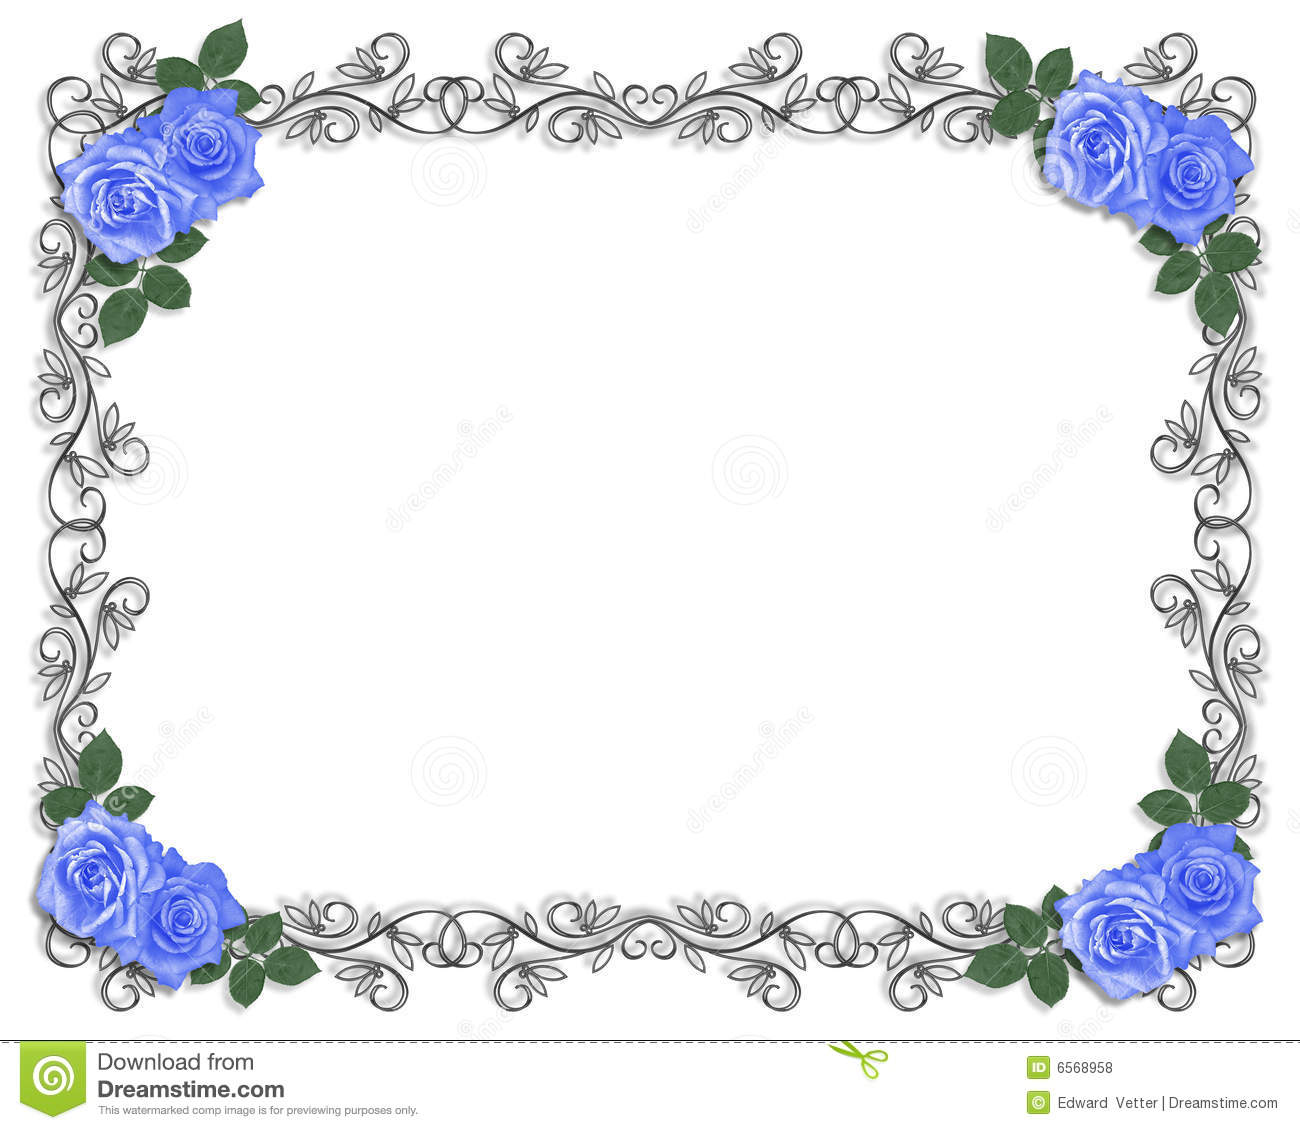 wedding border design templates koni polycode co